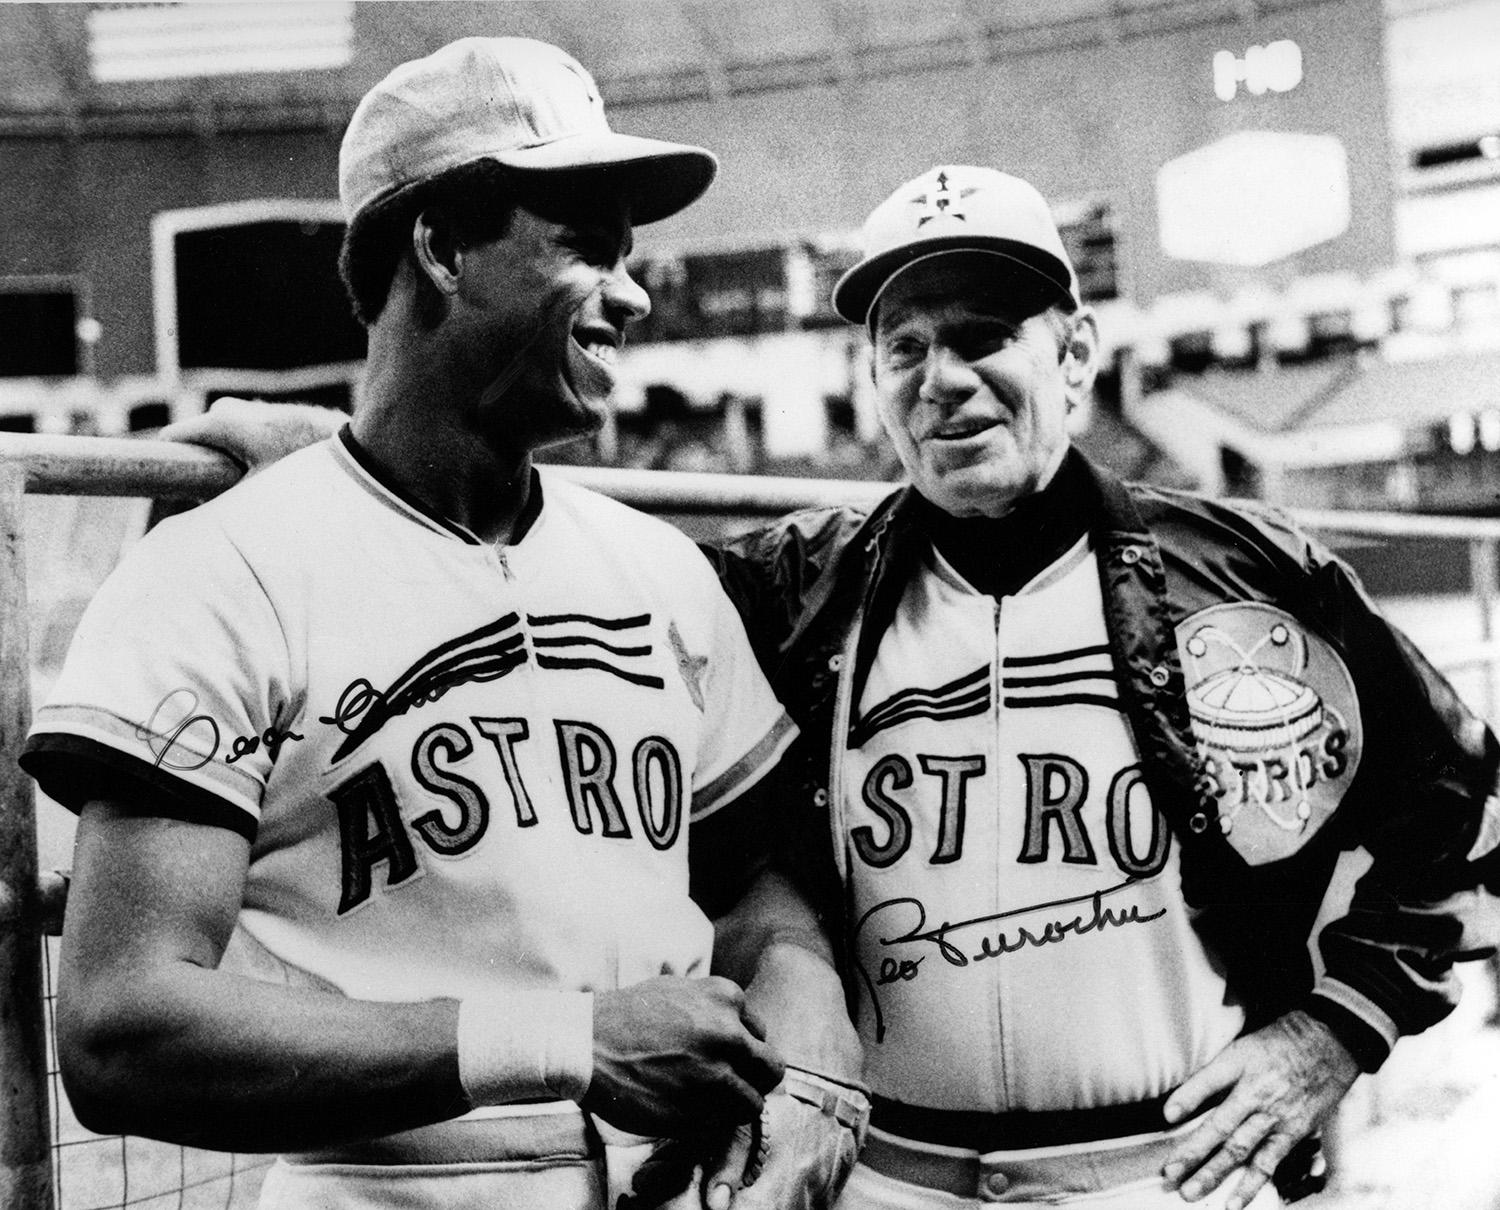 Astros manager Leo Durocher stands alongside Astros outfielder César Cedeño. (National Baseball Hall of Fame and Museum)